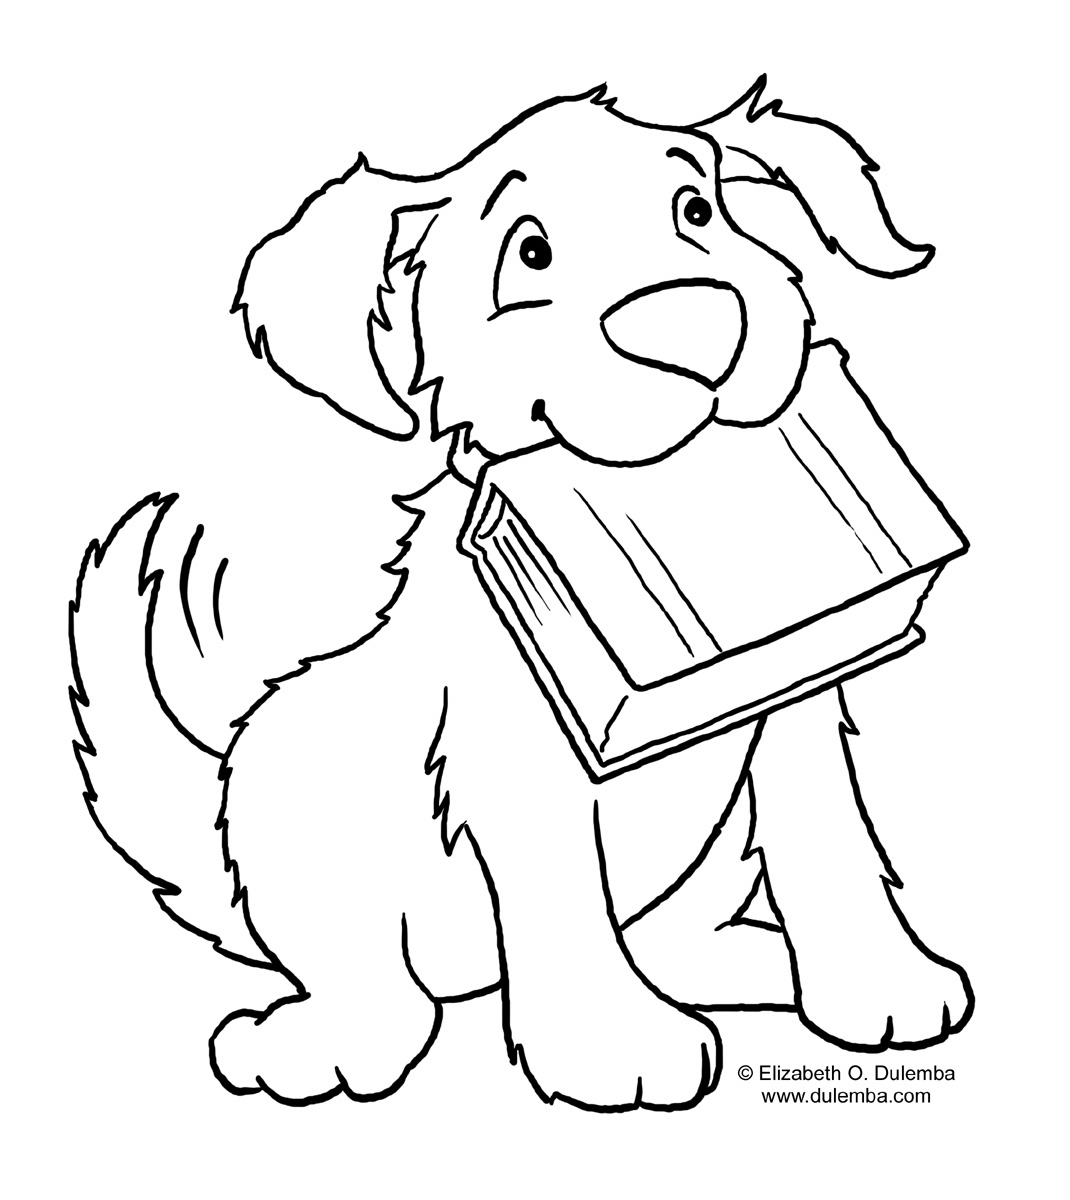 1070x1200 Animals Reading Books Coloring Pages Kids Pictures To Color